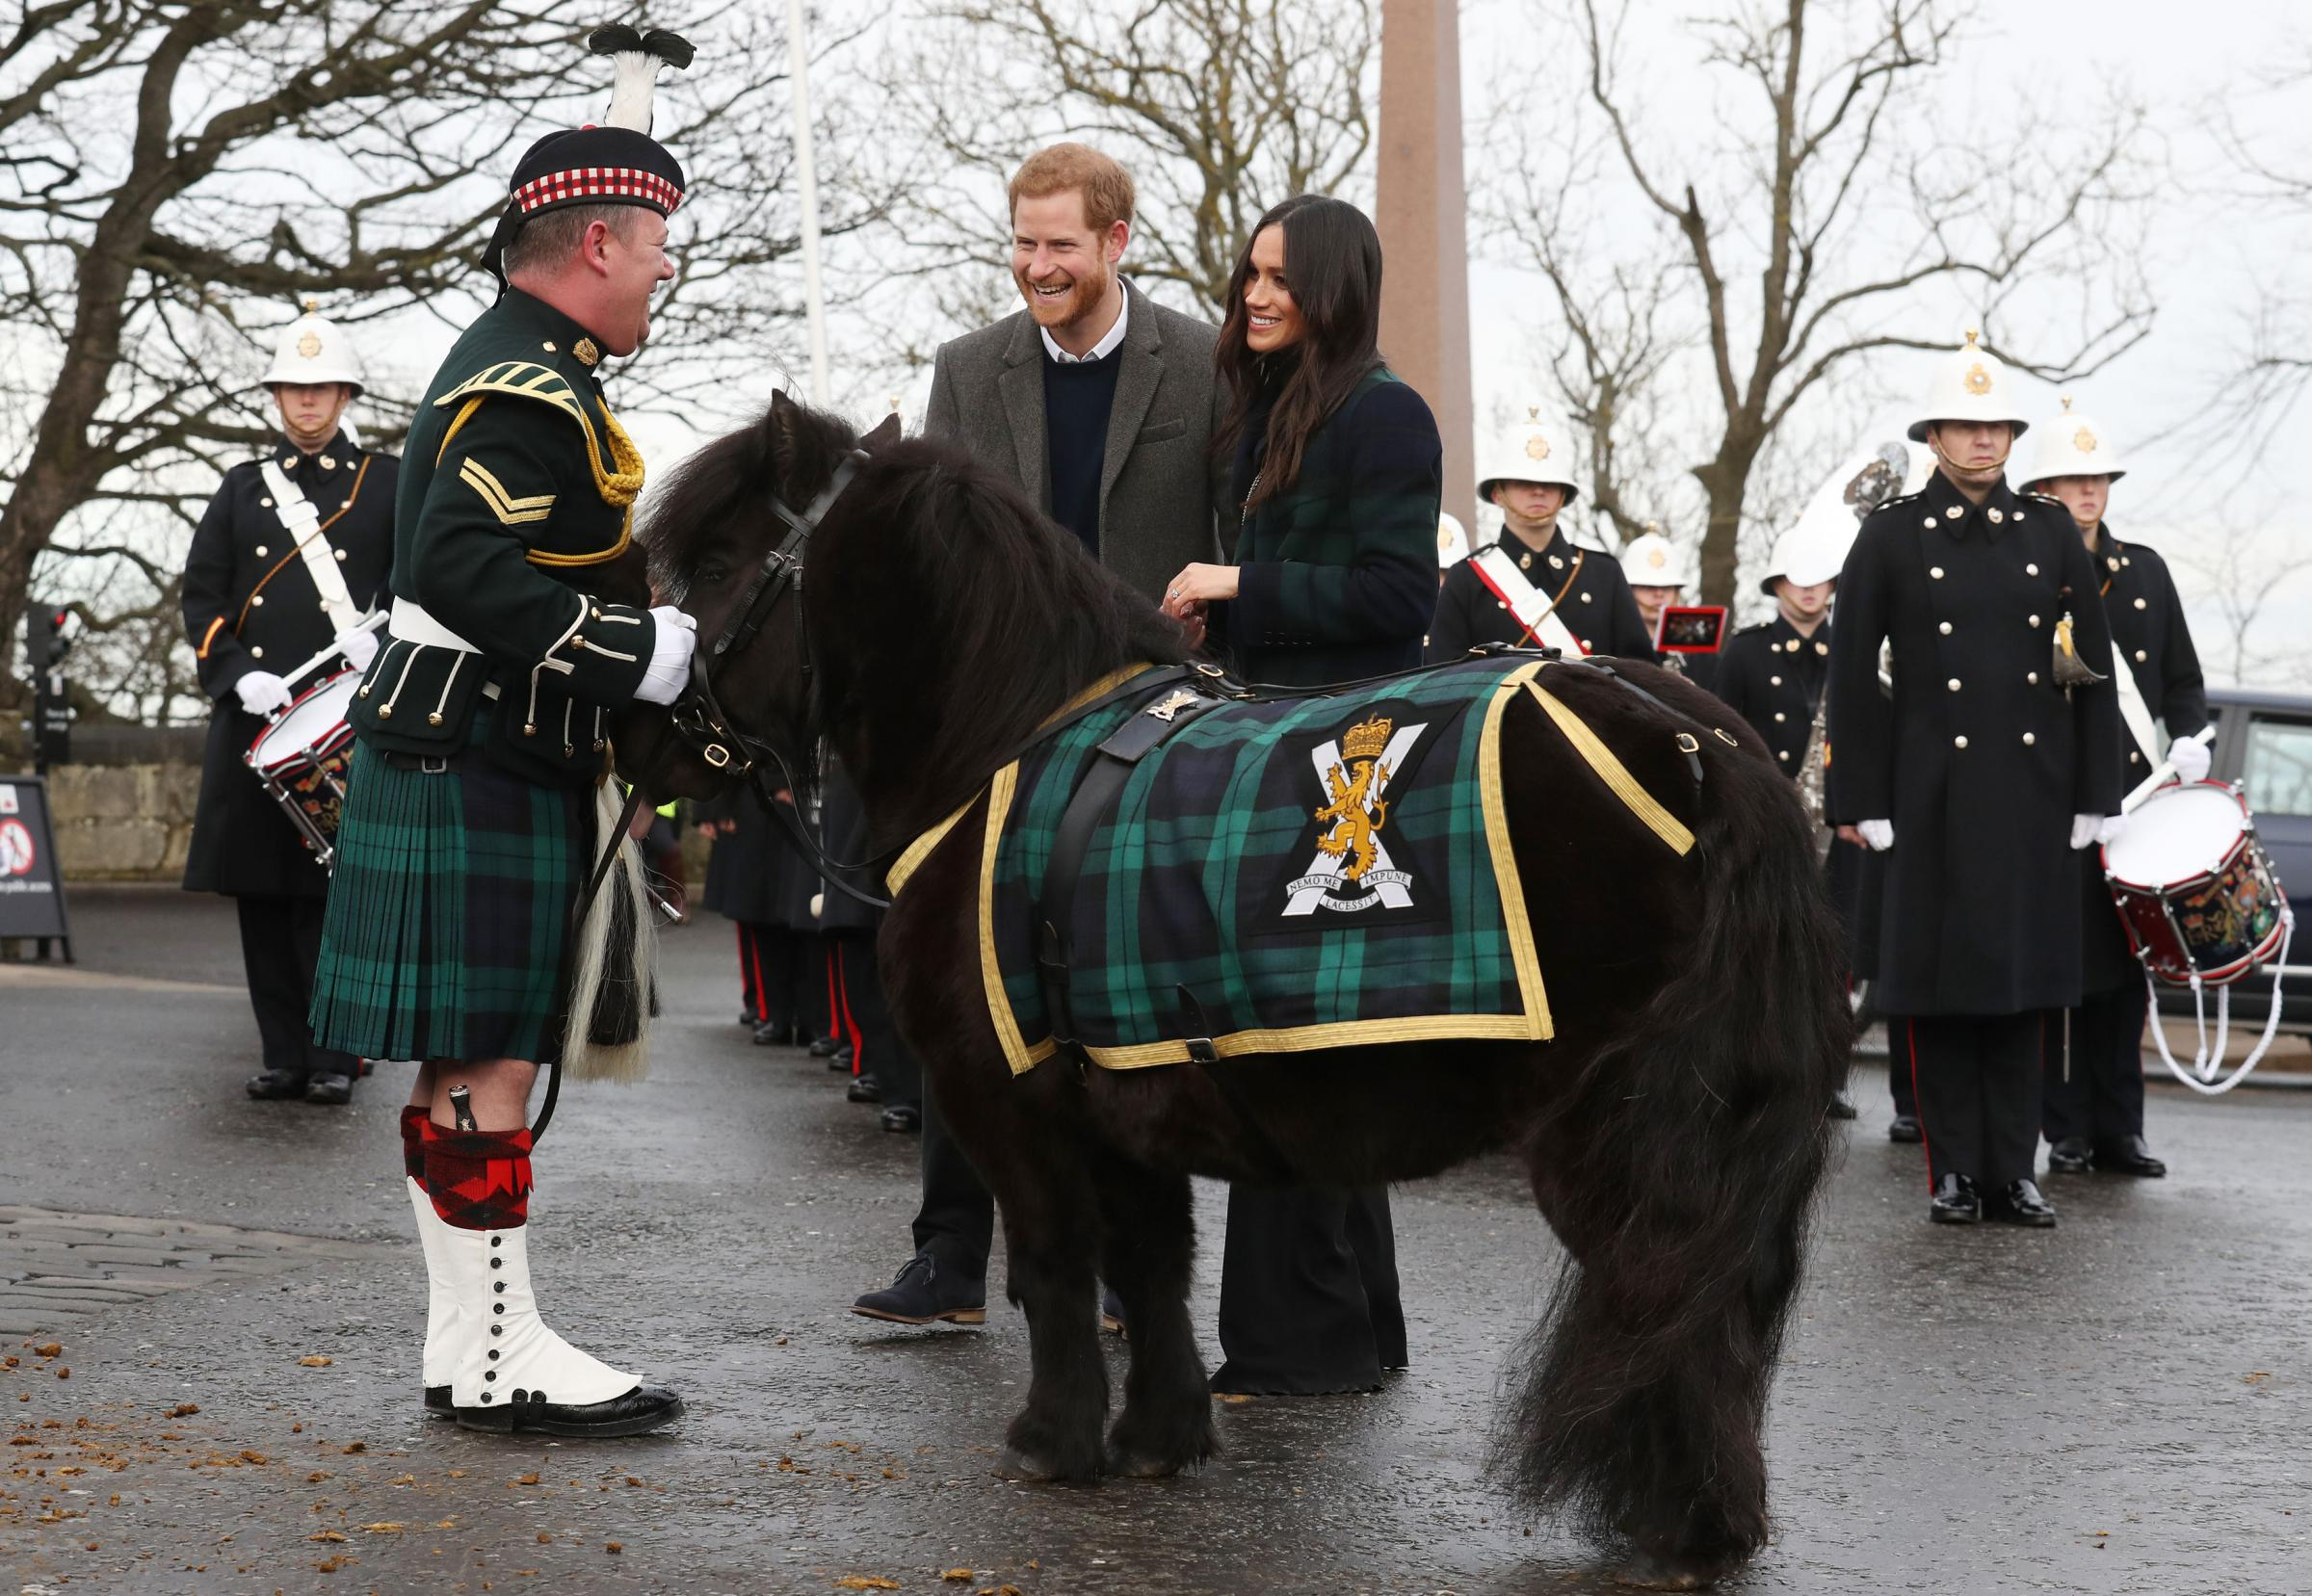 Prince Harry and Meghan Markle meet Pony Major Mark Wilkinson and regimental mascot Cruachan IV during a walkabout on the esplanade at Edinburgh Castle, during their visit to Scotland. PRESS ASSOCIATION Photo. Picture date: Tuesday Februar